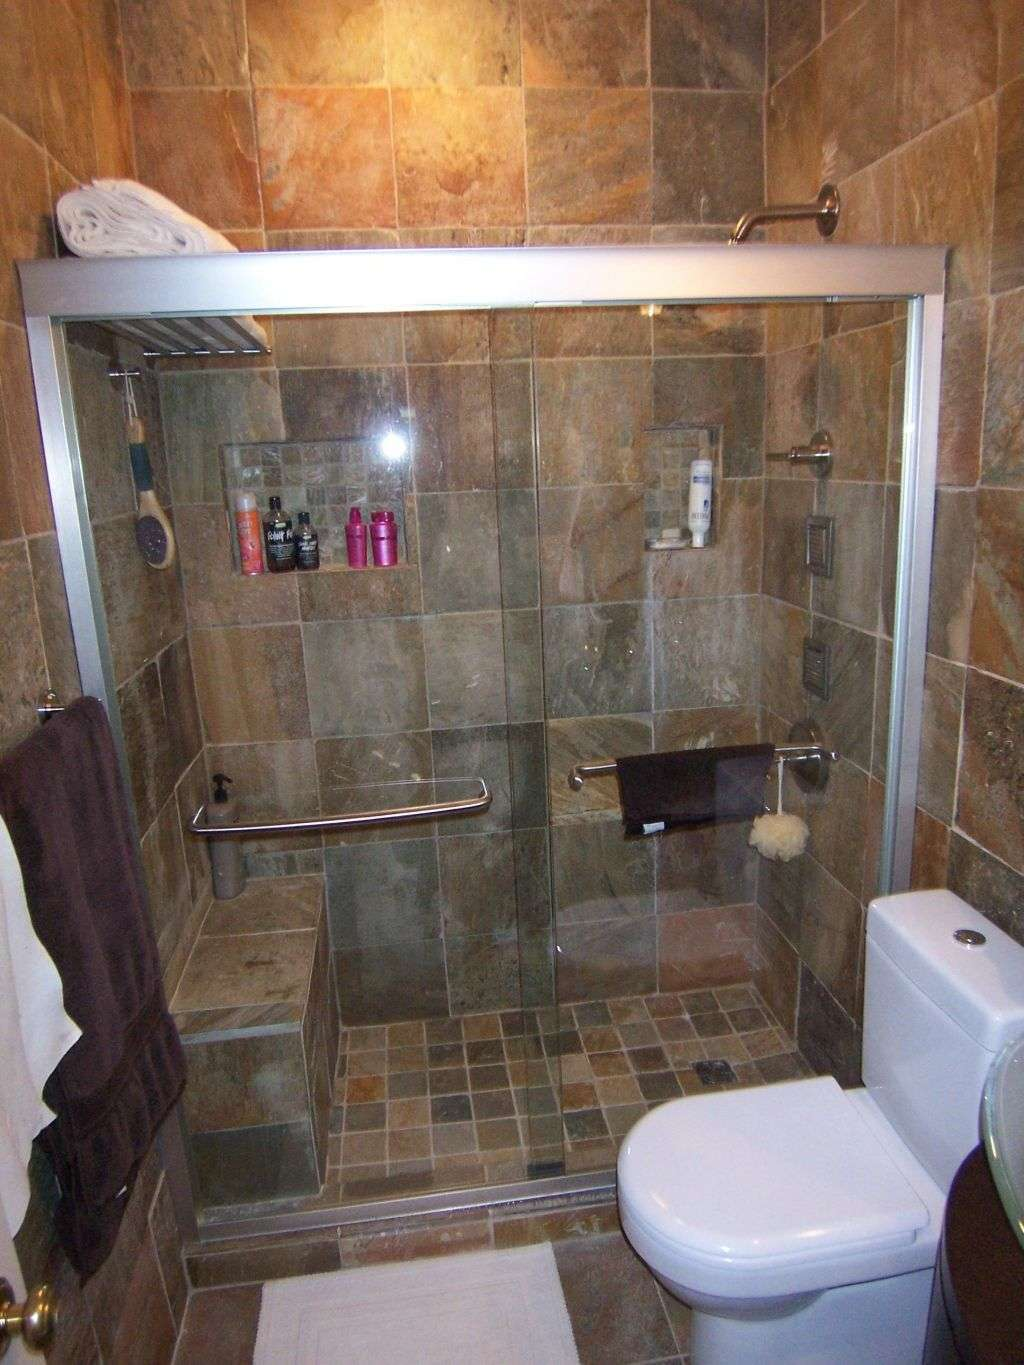 bathroom tile floor ideas for small bathrooms 40 wonderful pictures and ideas of 1920s bathroom tile designs 25941 | Bathroom Shower Tile Designs For Small Bathrooms 12